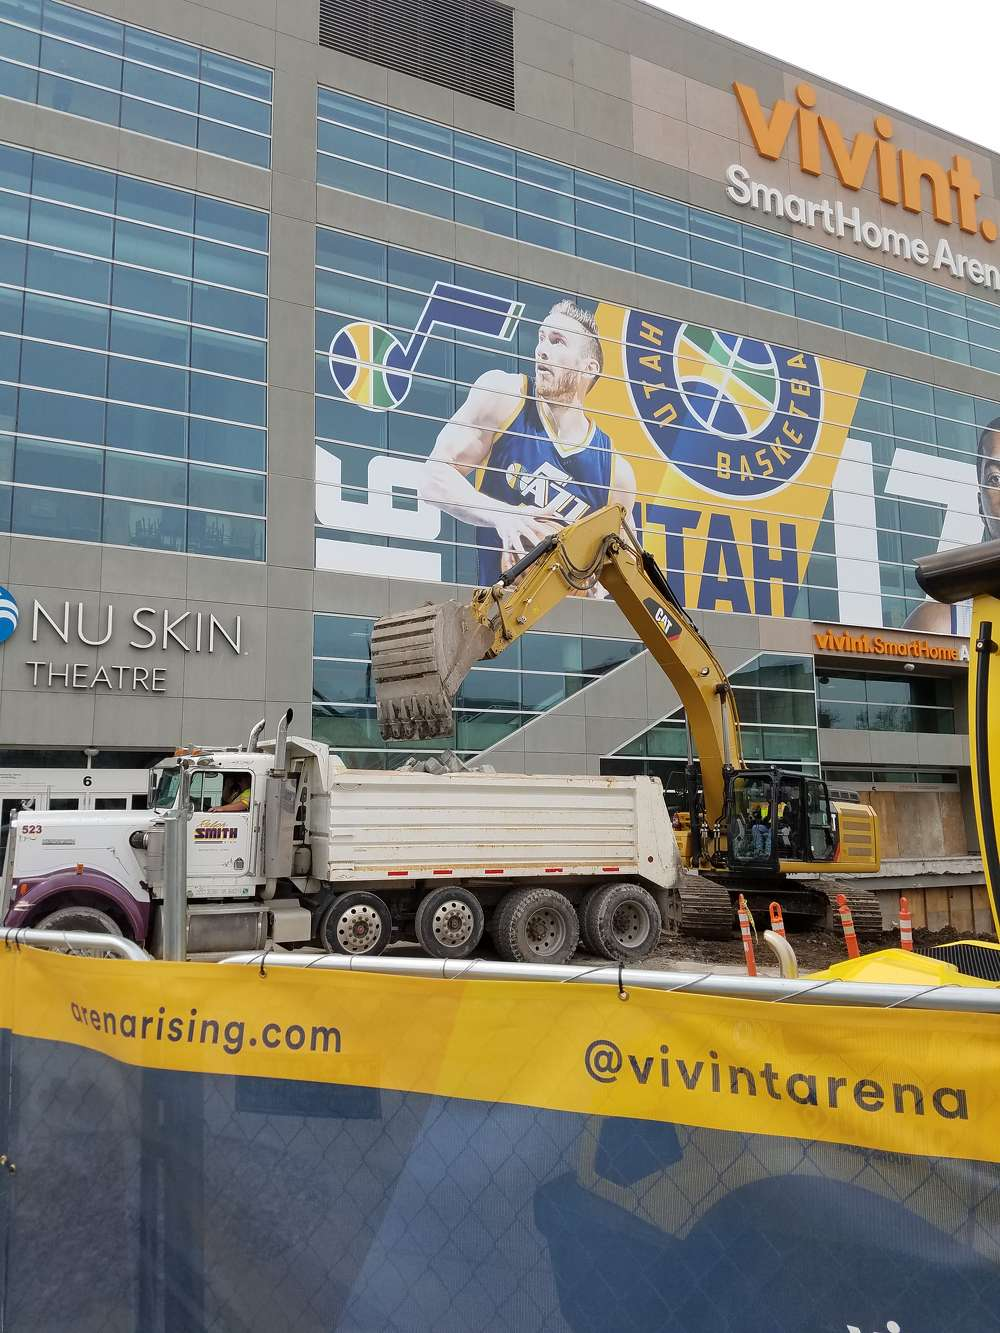 Vivint Smart Home Arena is the scene of some major construction work as it undergoes a $125 million renovation.